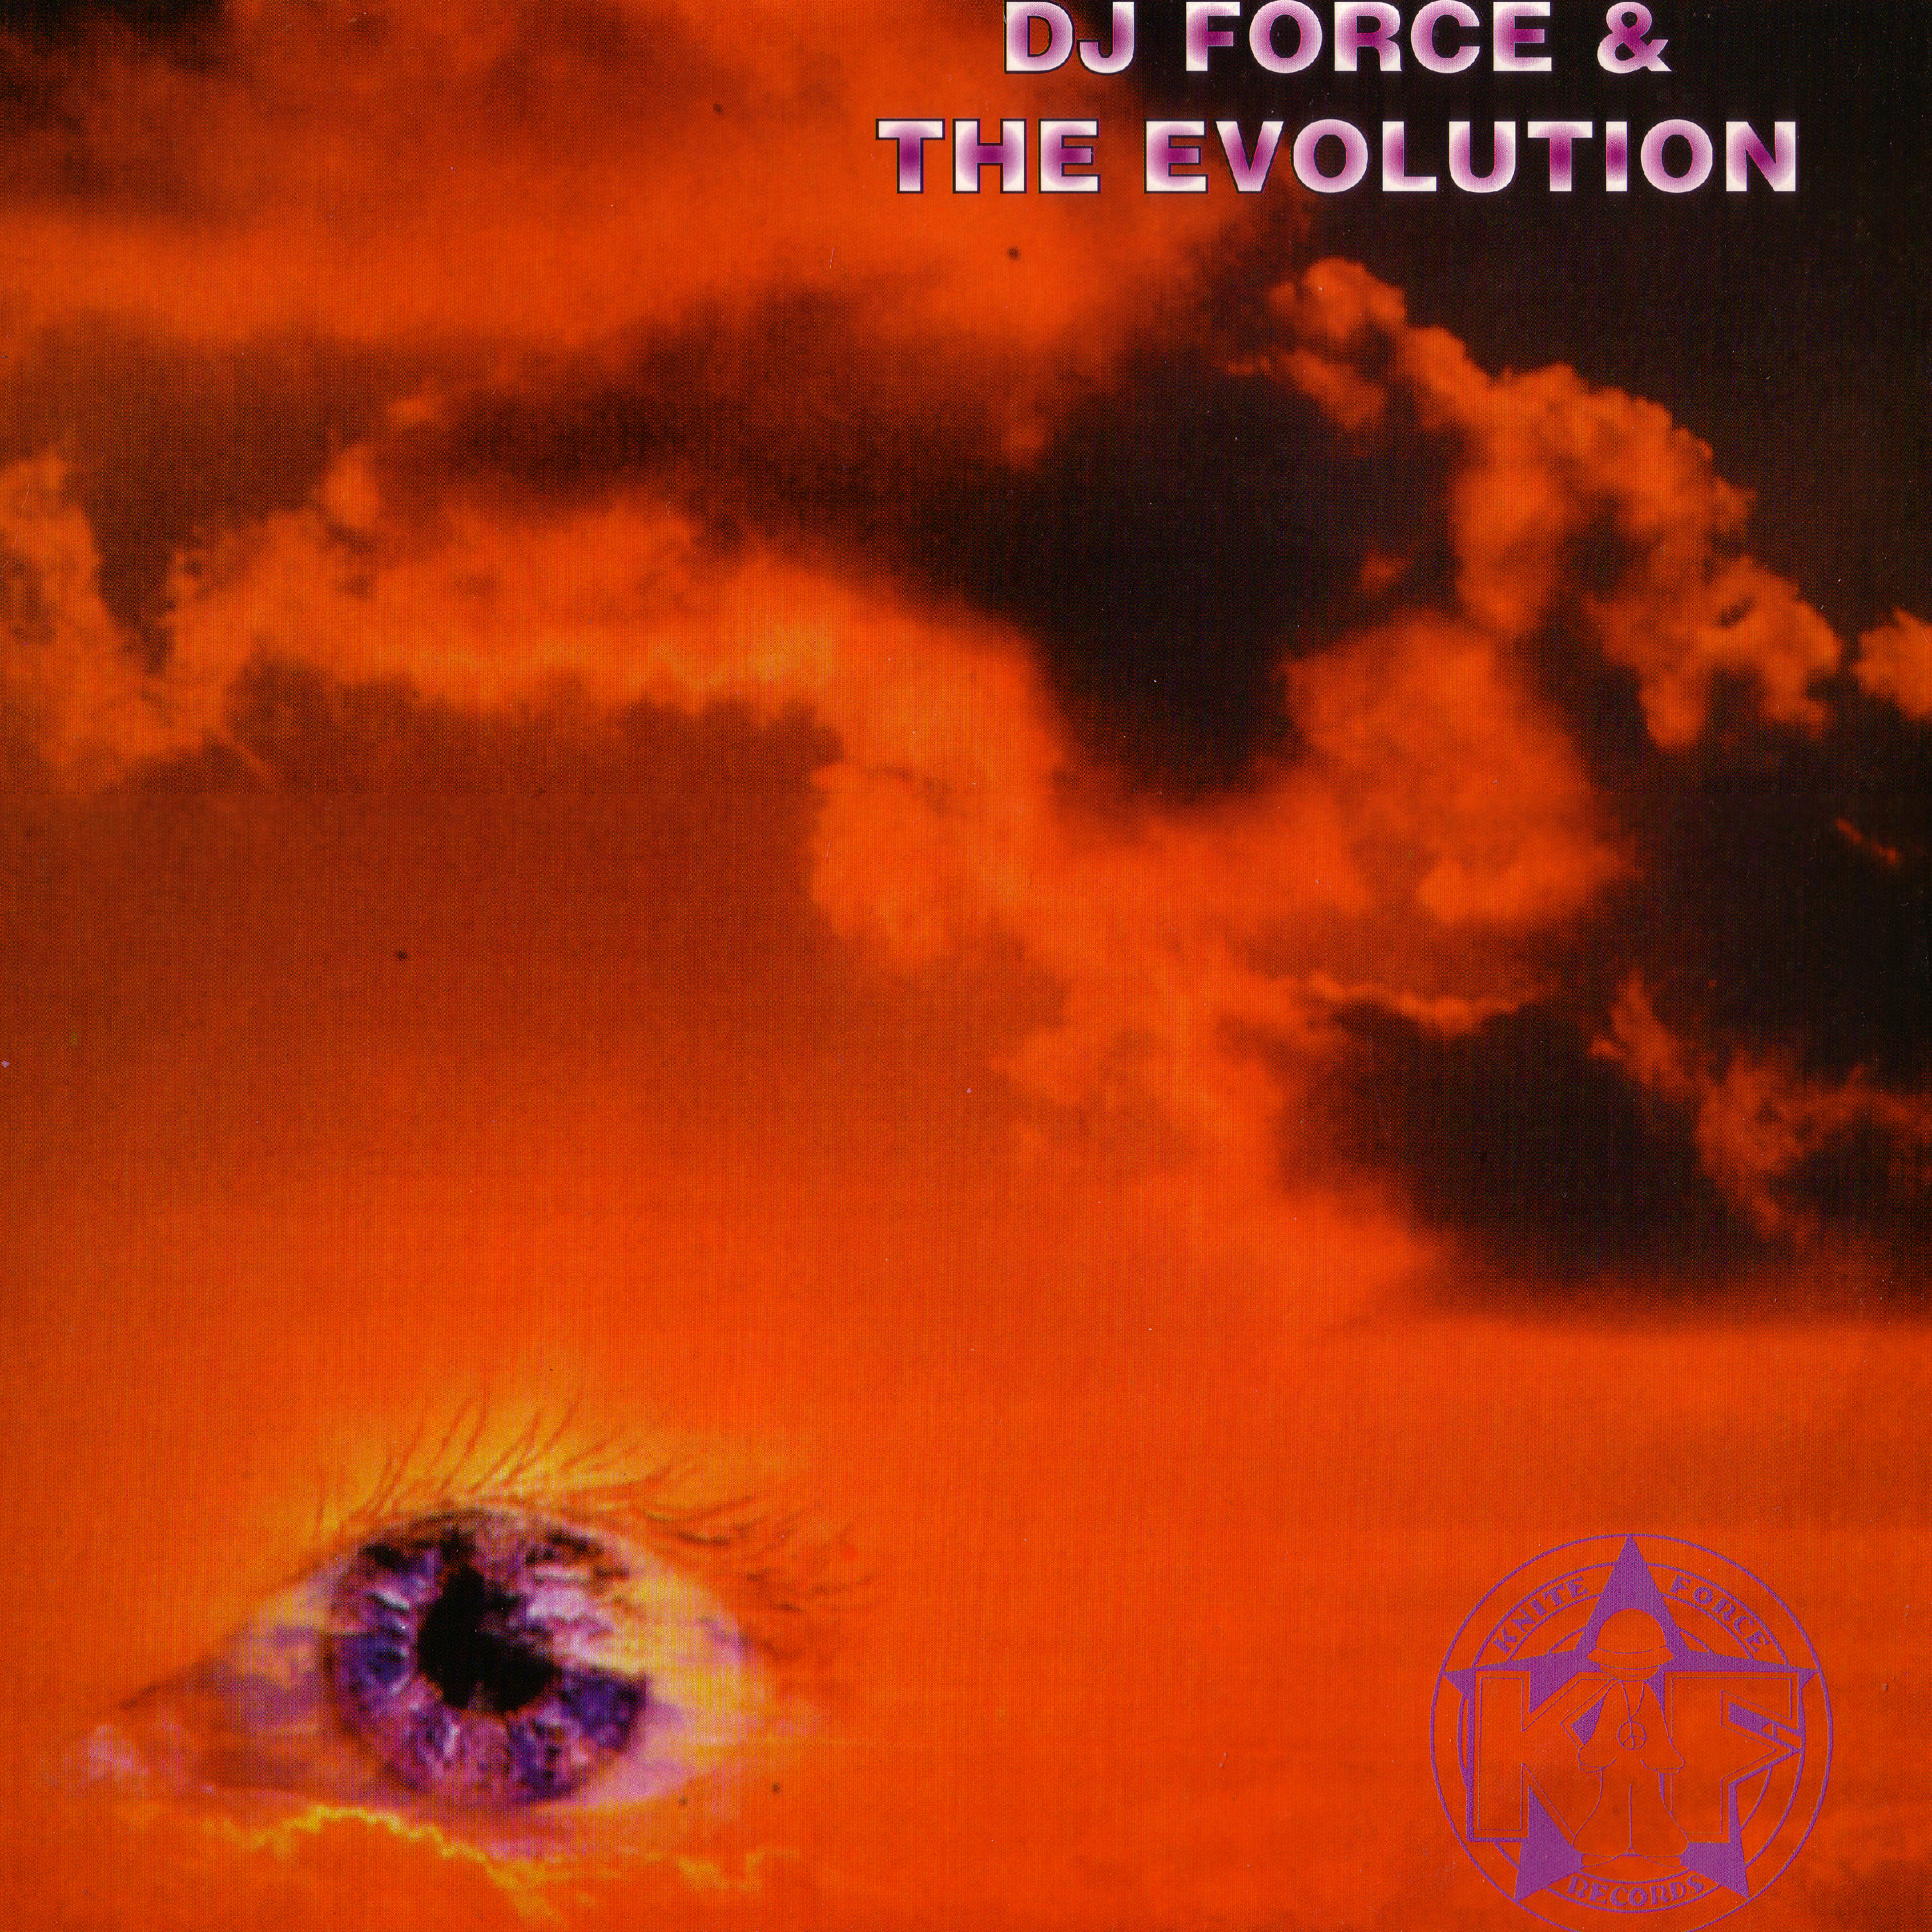 [KF034] DJ Force & The Evolution - Show Me Heaven EP (Digital Only)